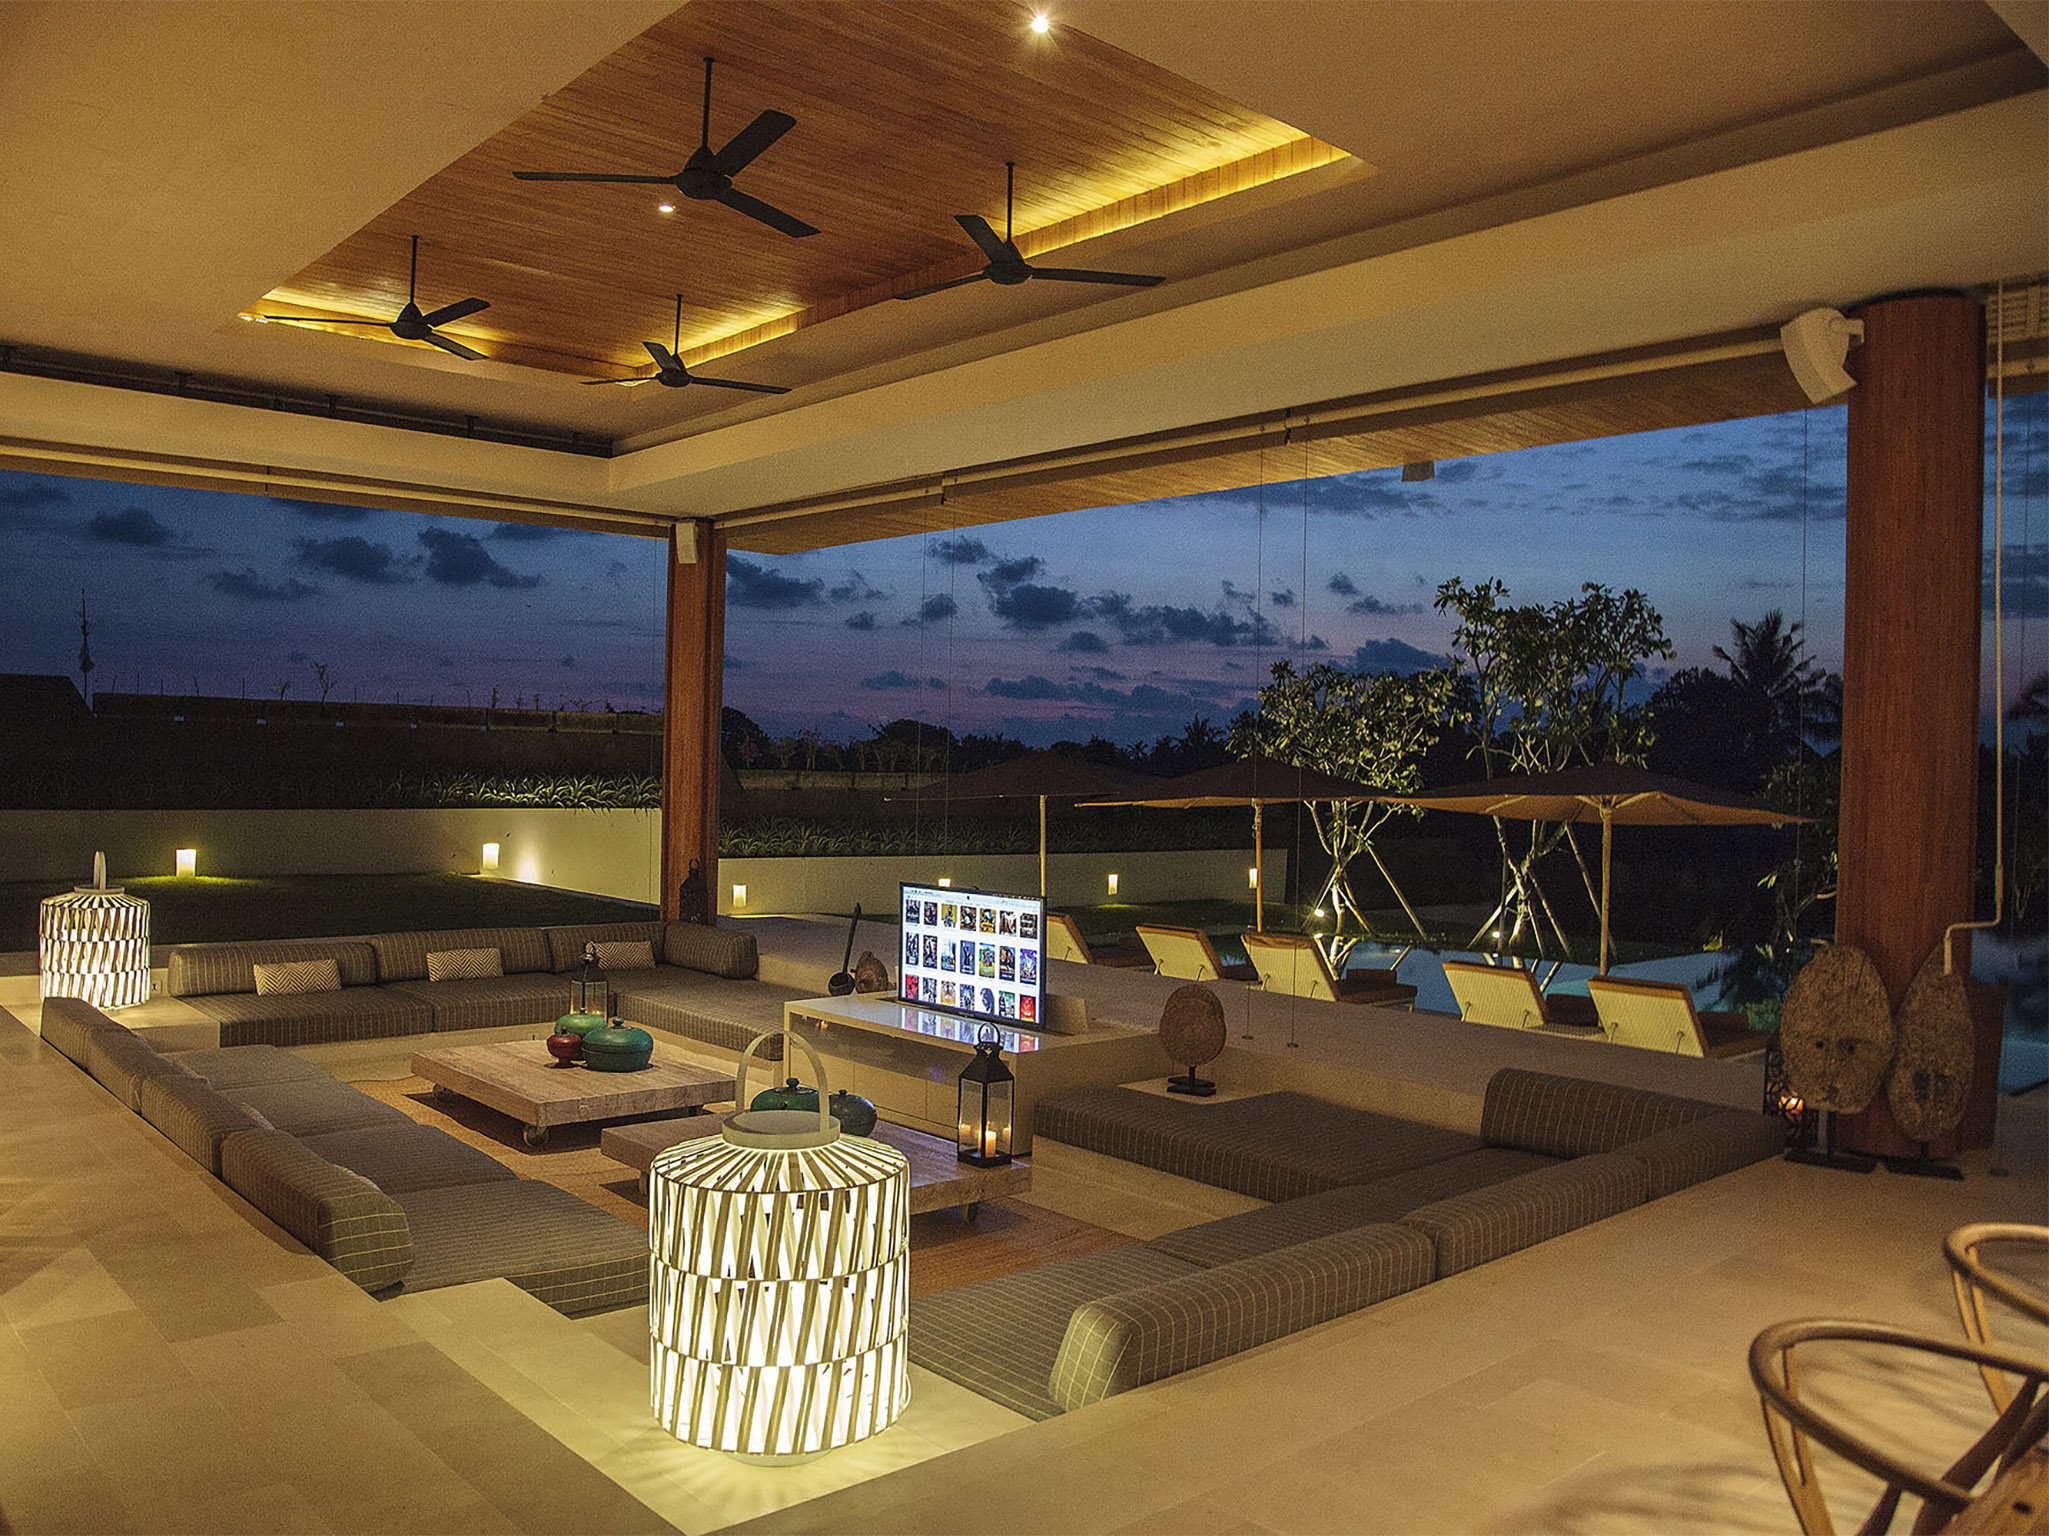 The Iman Villa - Living area at night - The Iman Villa, Canggu, Bali